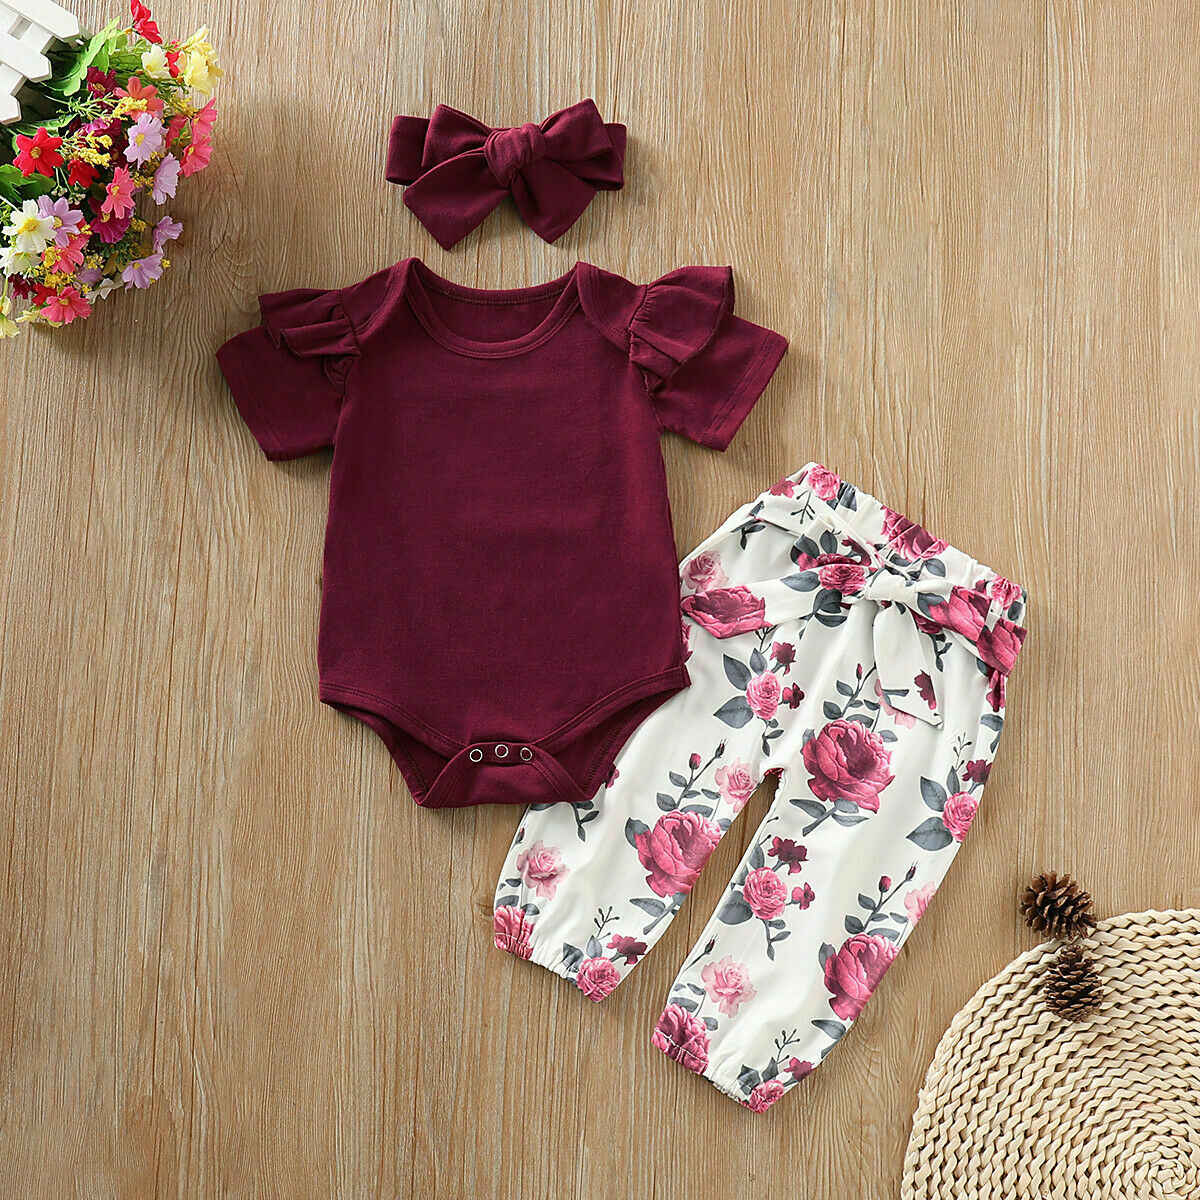 Emmababy 2019 New Brand Newborn Infant Girl Short Sleeve Tops Romper Floral Pants Headband Outfits Clothes 3PCS Set Summer 0-24M